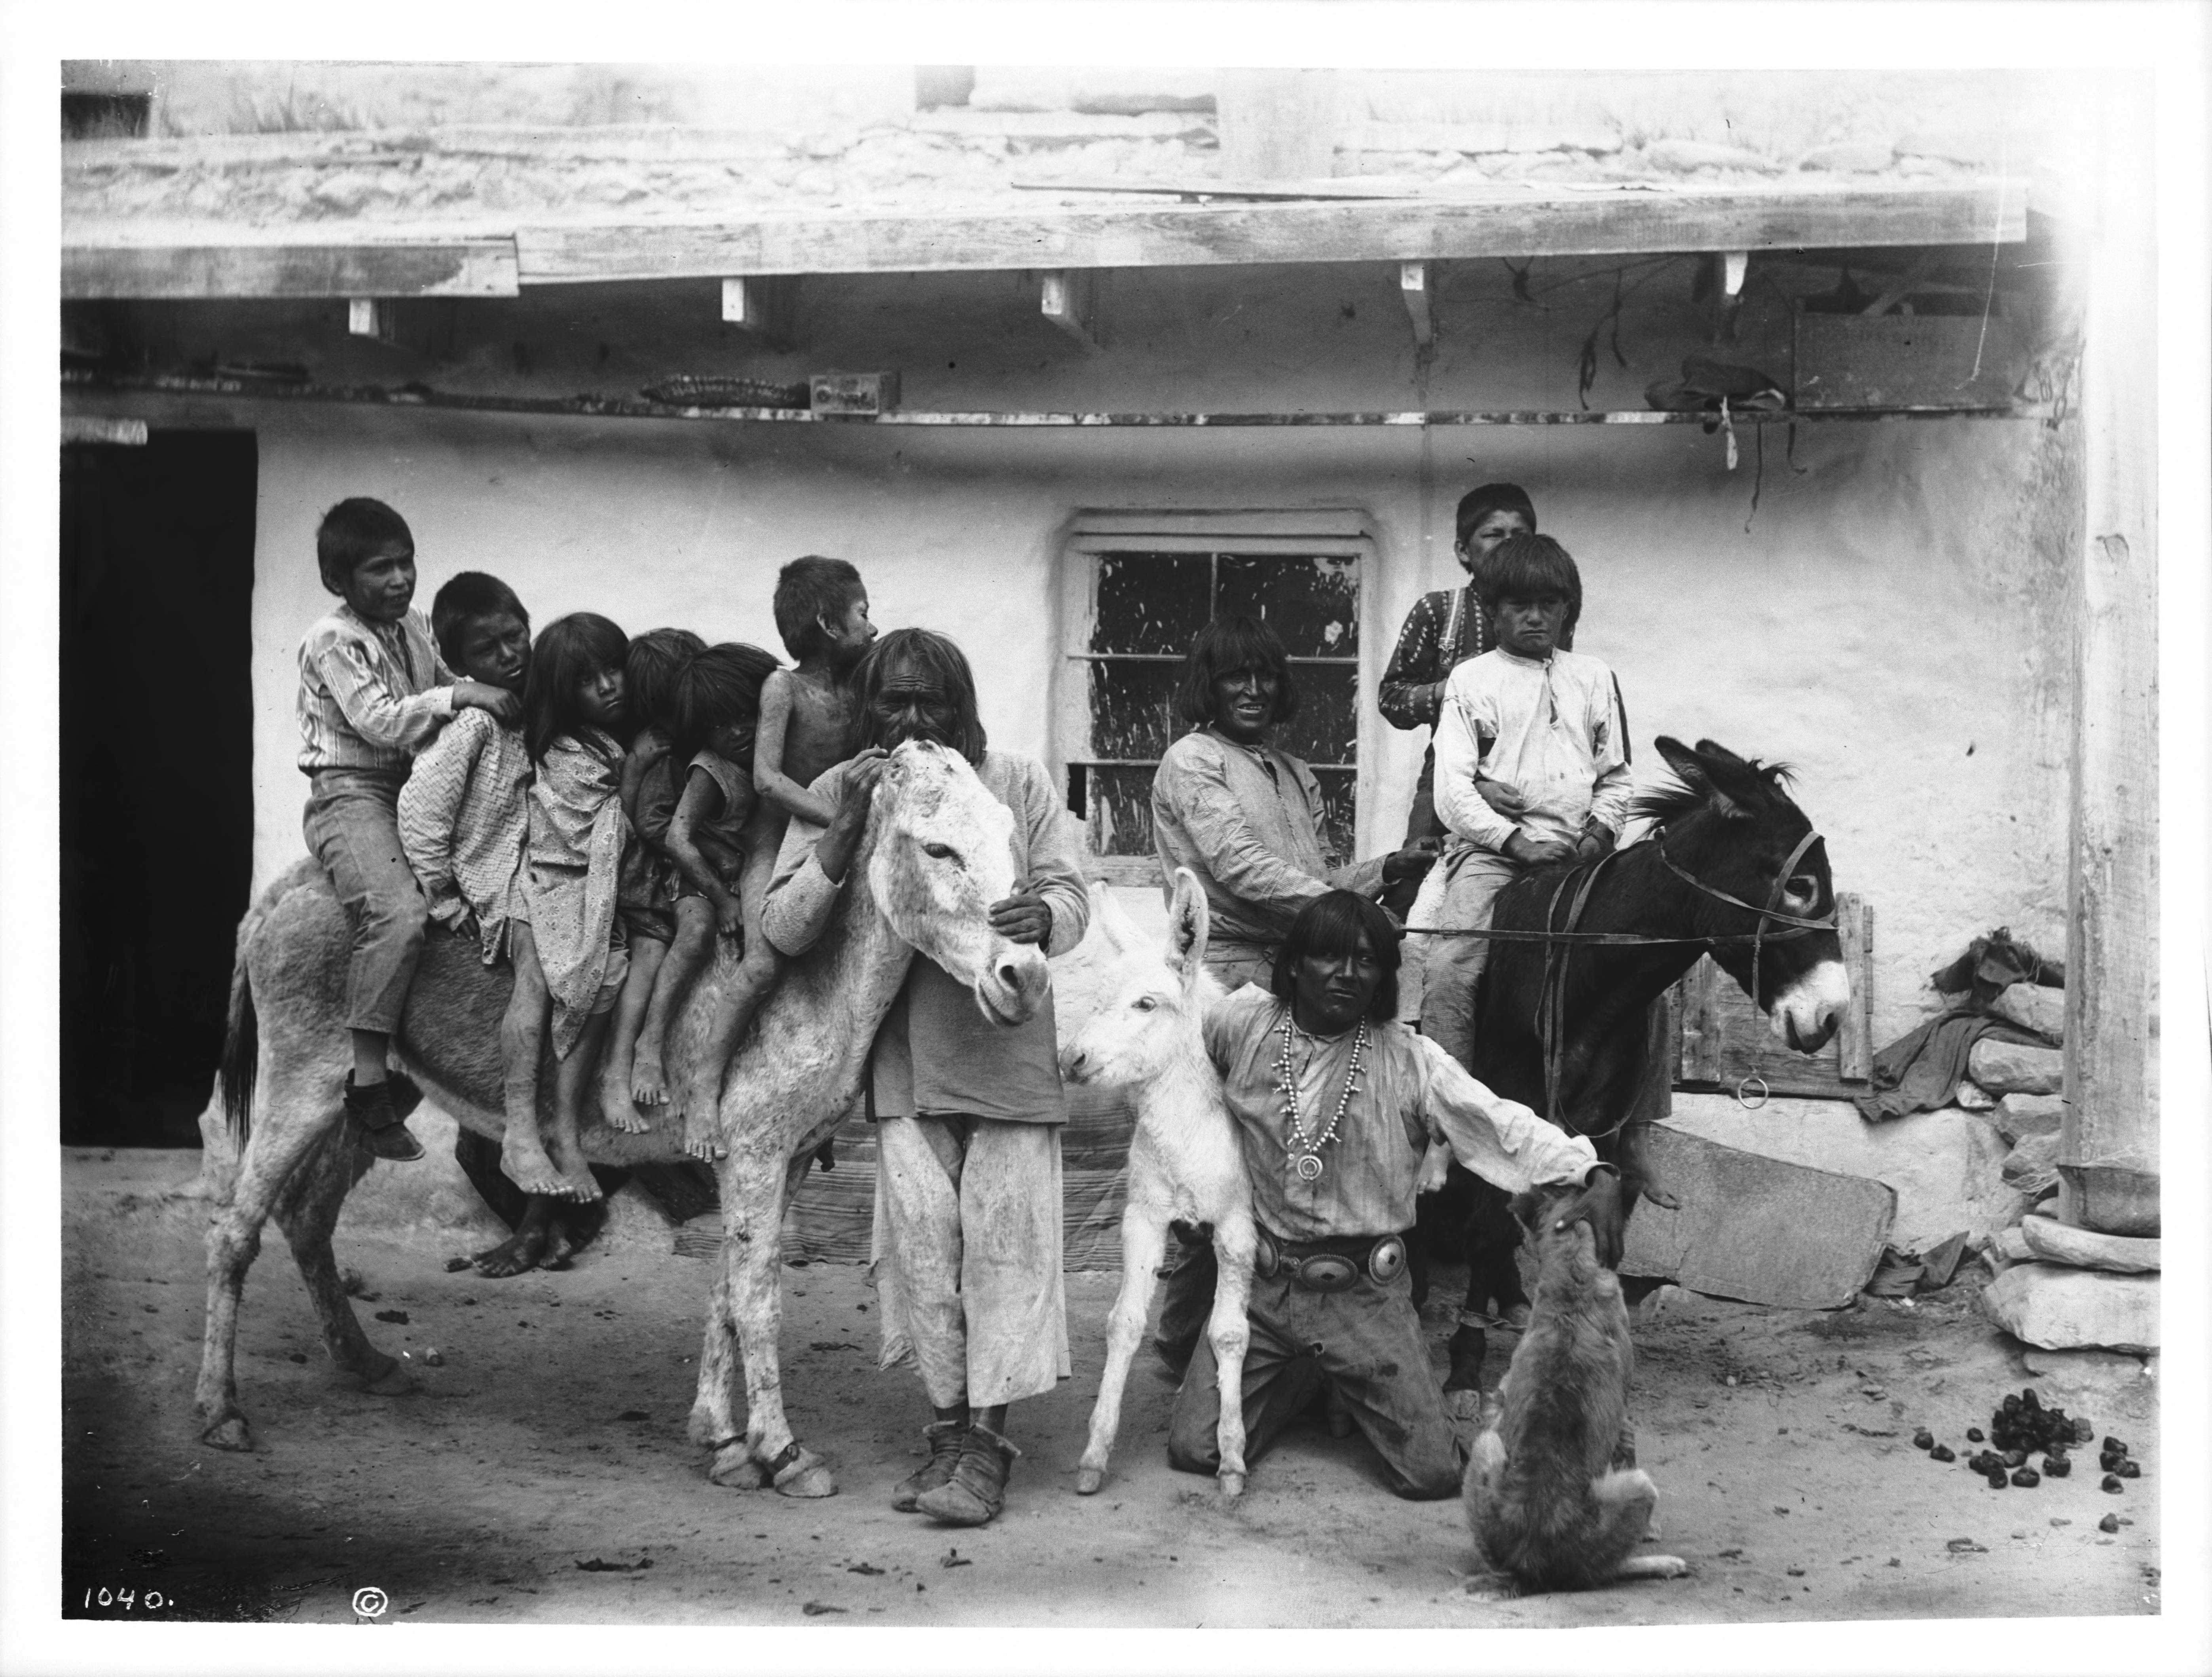 File:A group of Hopi Indian children on a 2 burros in the ...